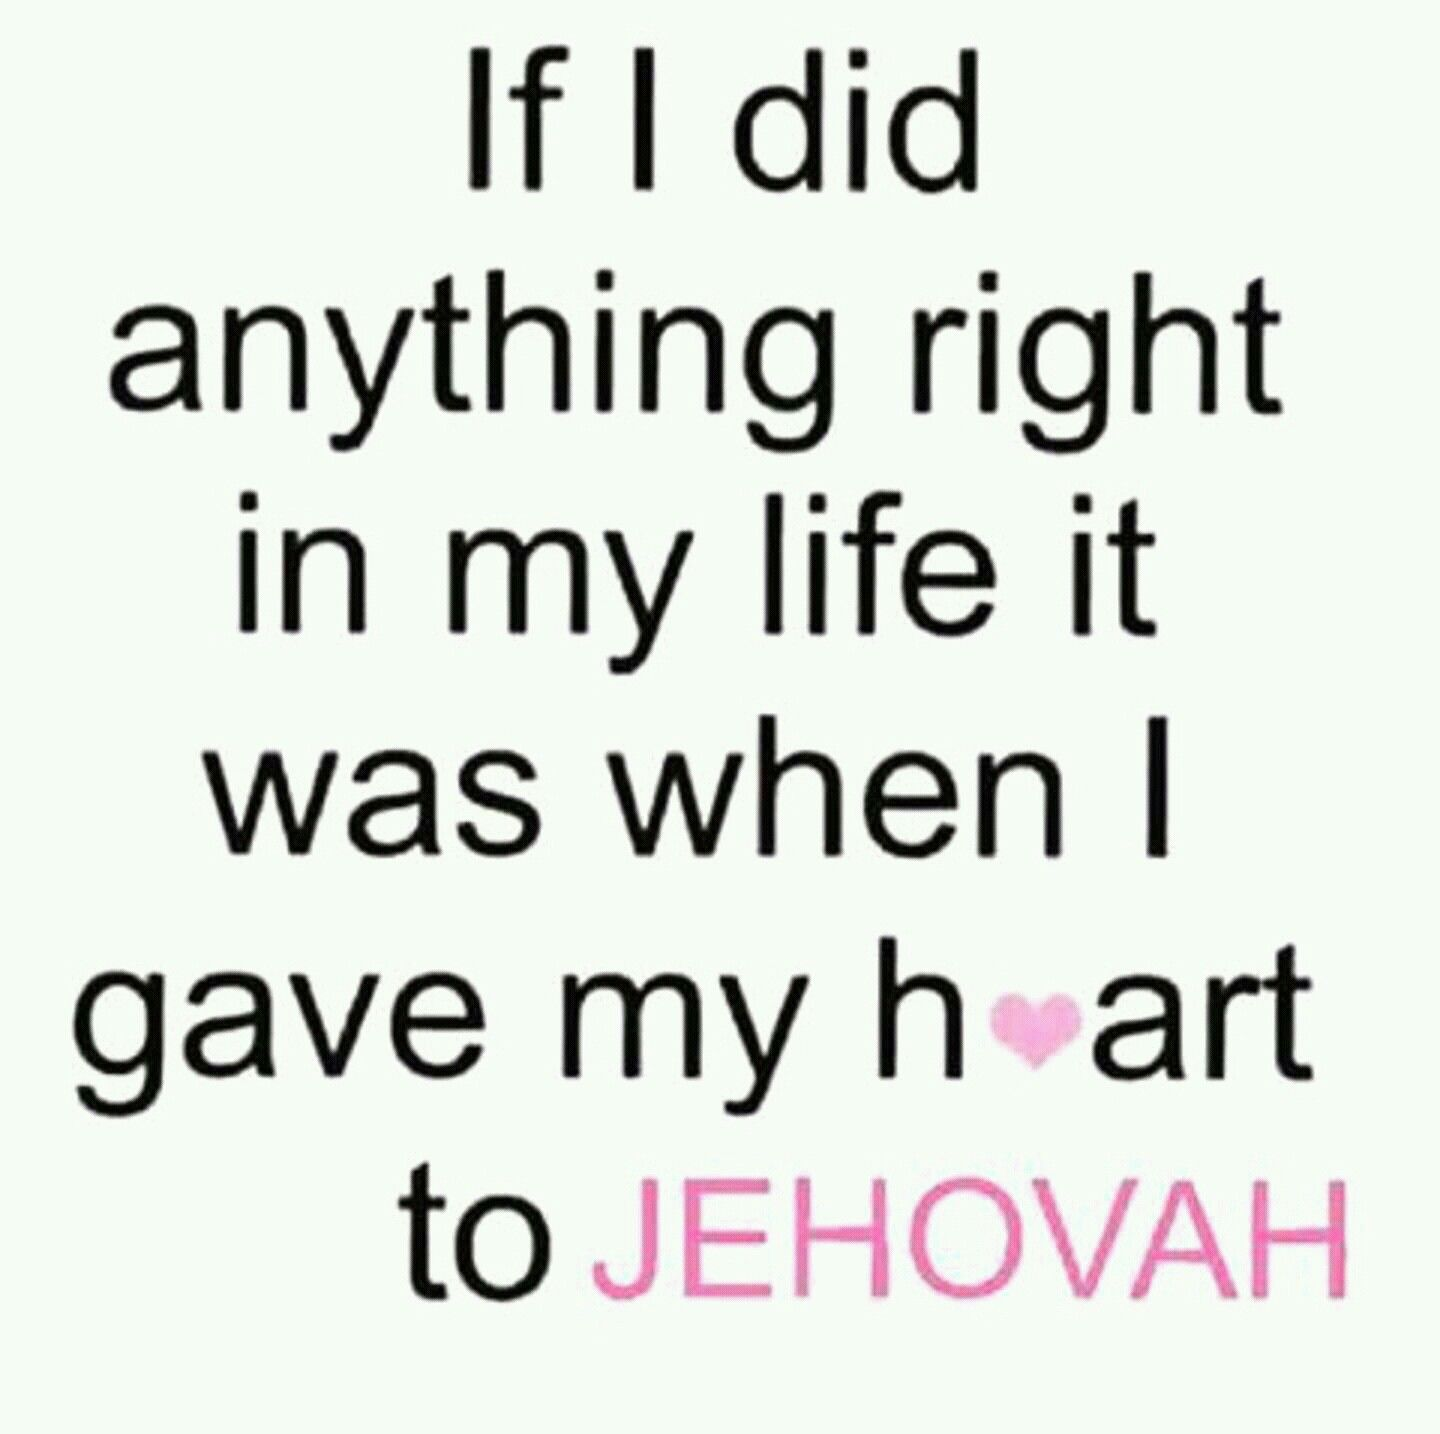 I Love My Wife Quotes So Very True.about The Only Right Decision This Far Jehovah's